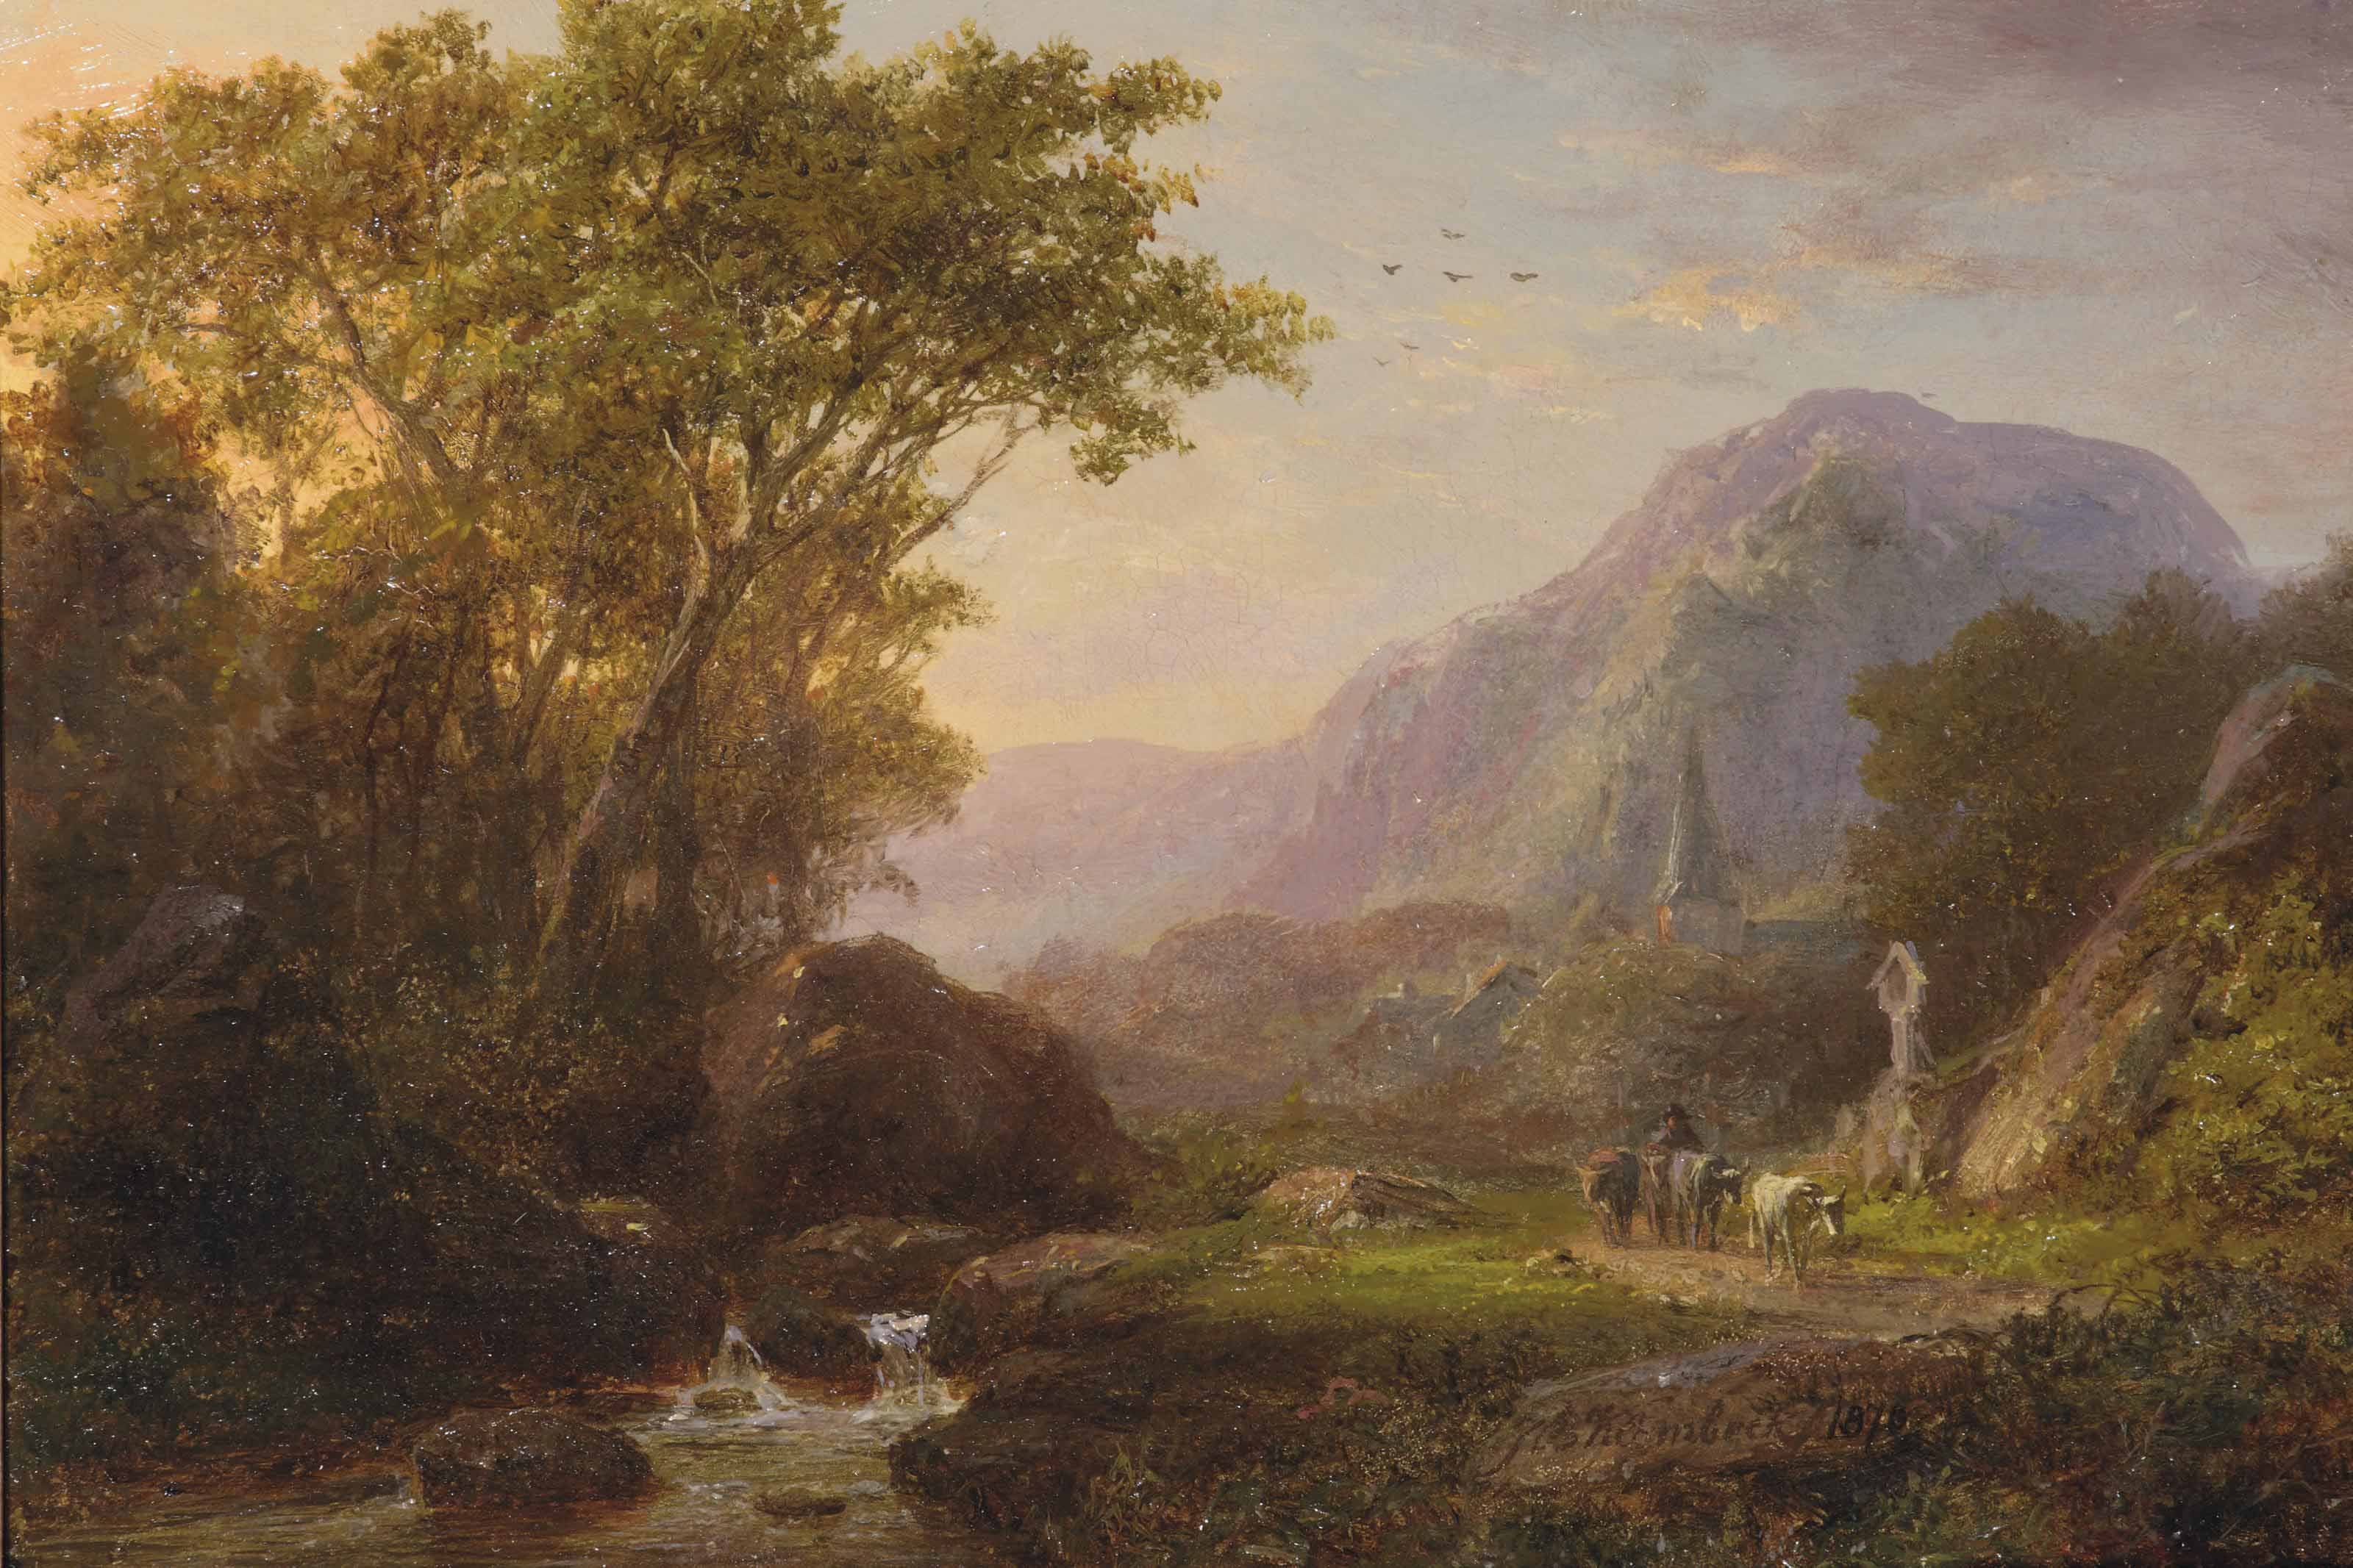 A mountainous summer landscape with cattle and a church beyond